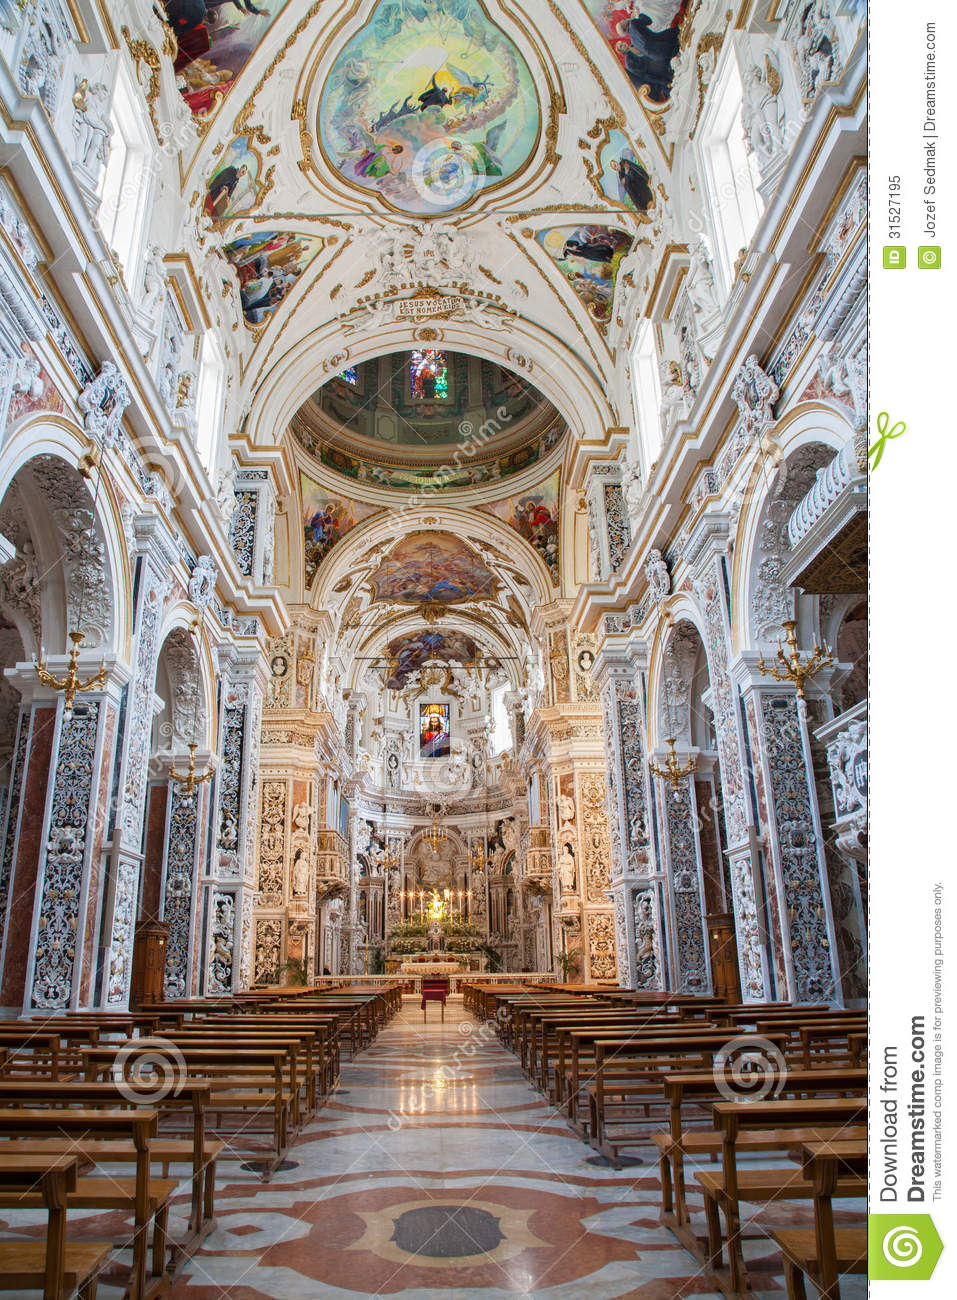 Palermo interior of church la chiesa del gesu royalty for Baroque style church